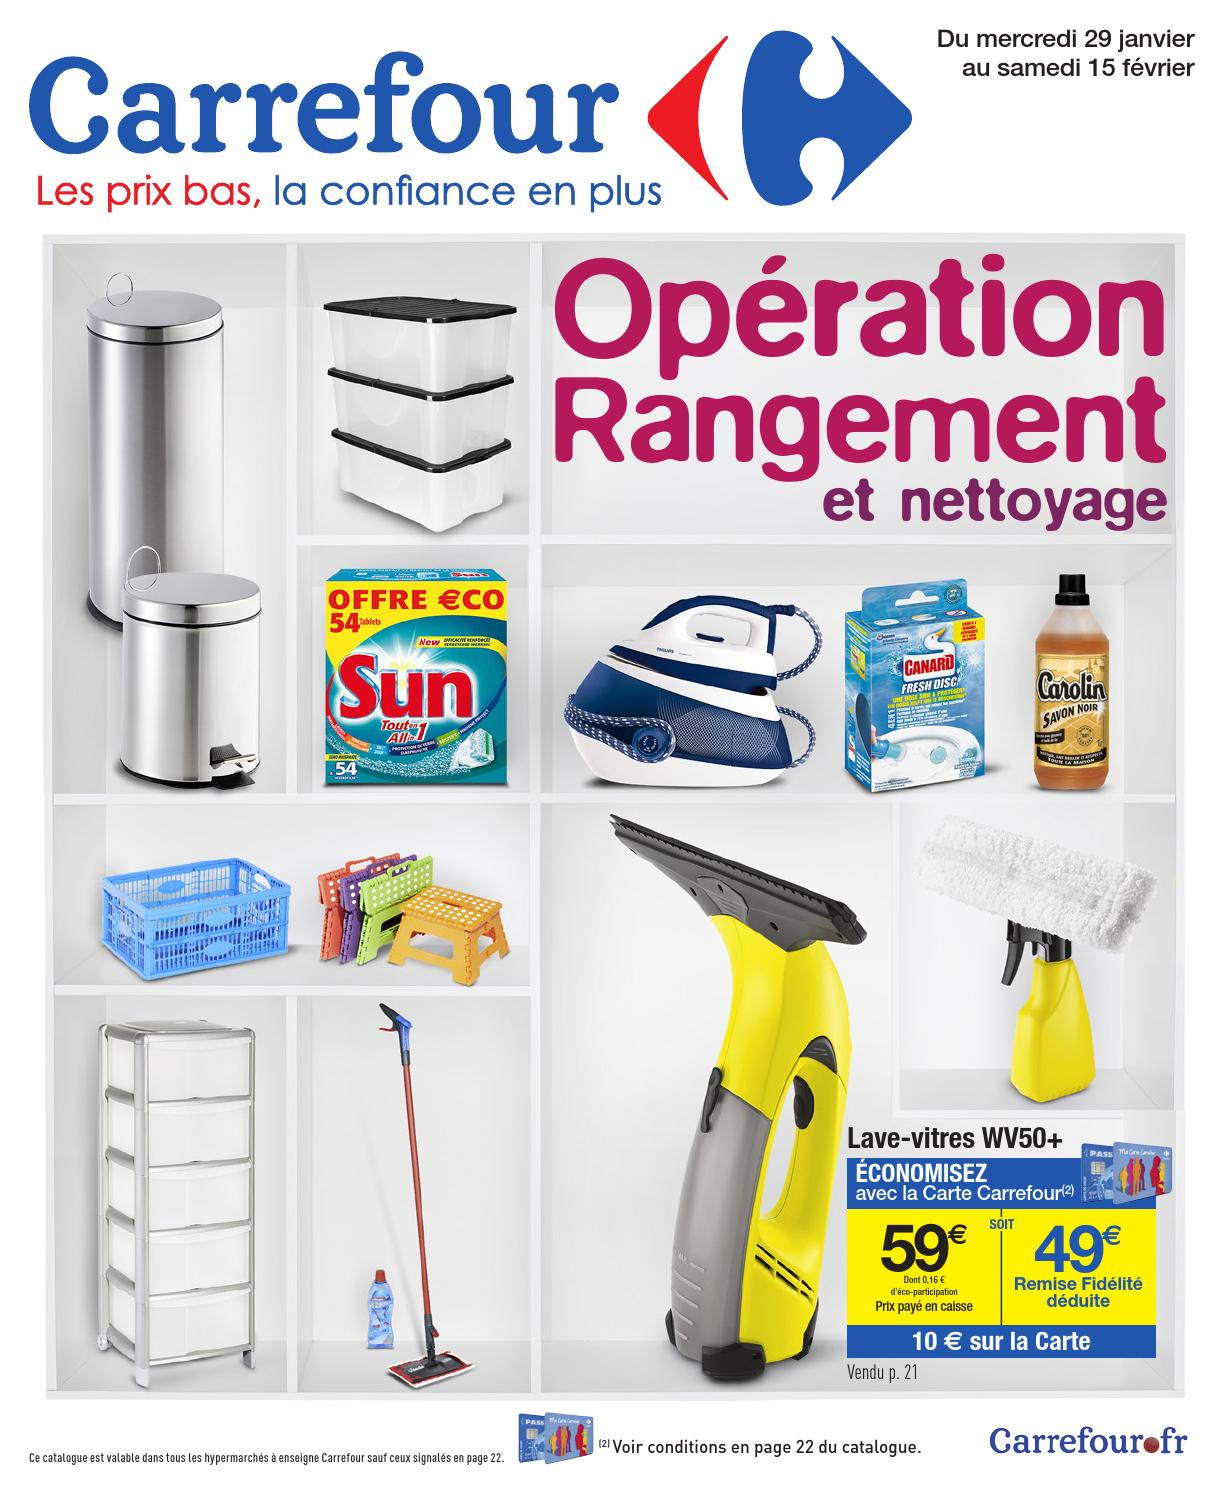 Catalogue carrefour by joe monroe issuu - Tour rangement plastique gifi ...